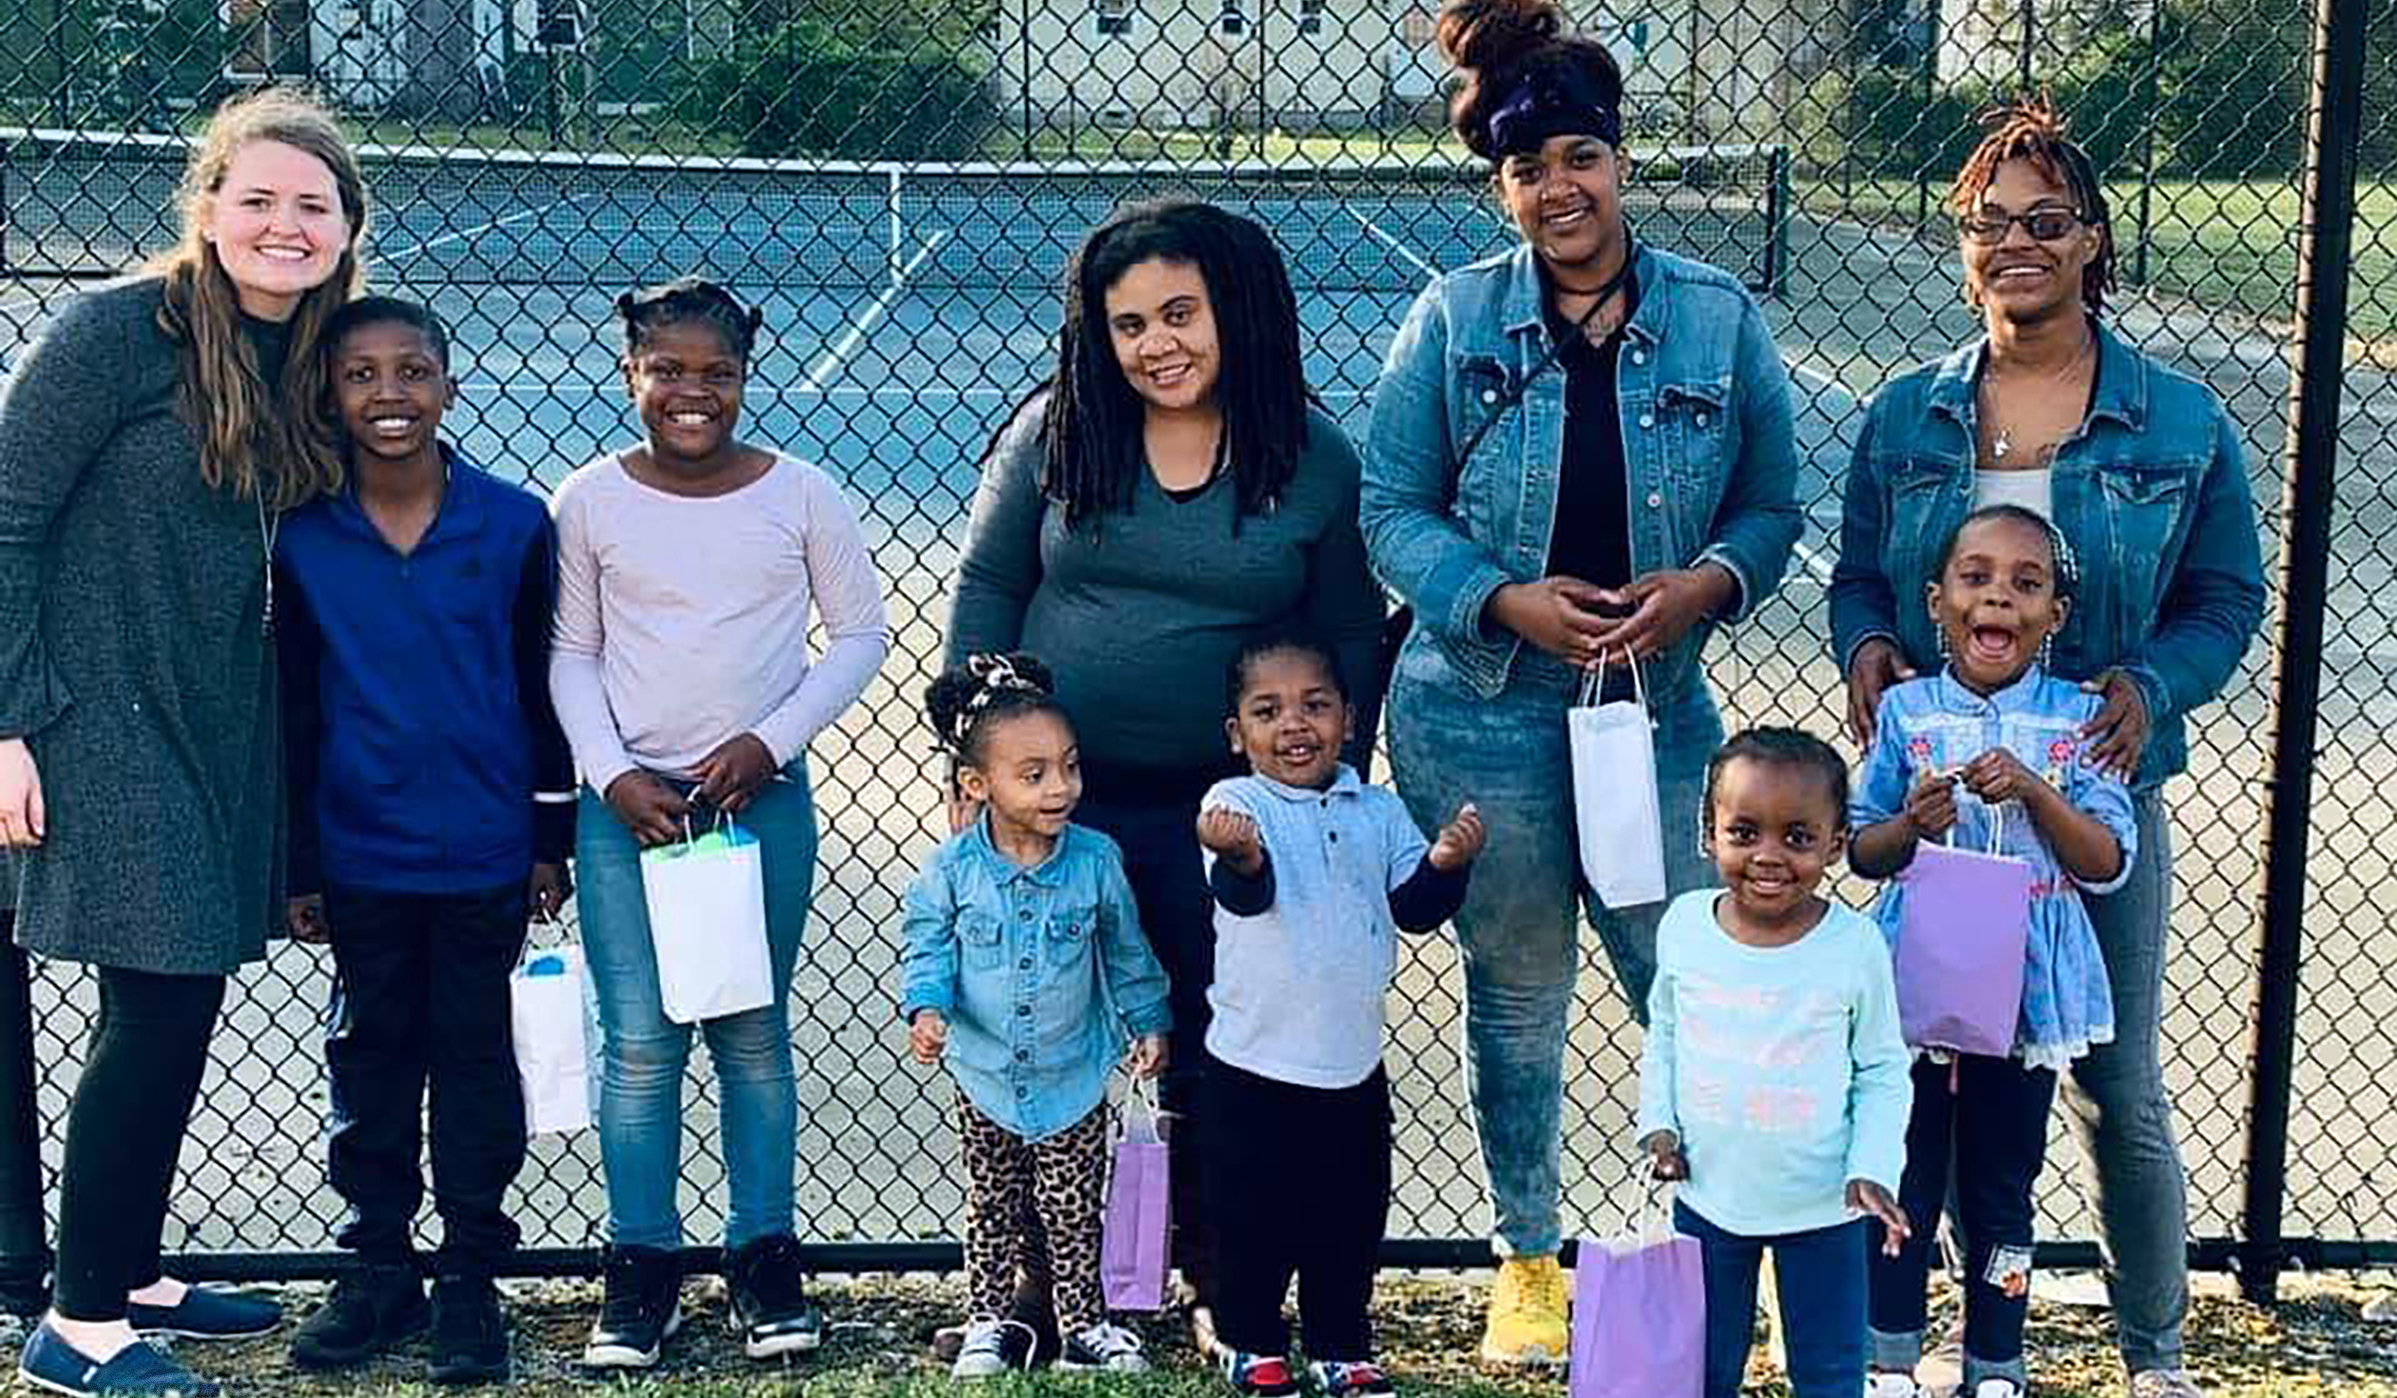 Group of mothers with children against a fence holding egg hunt baskets